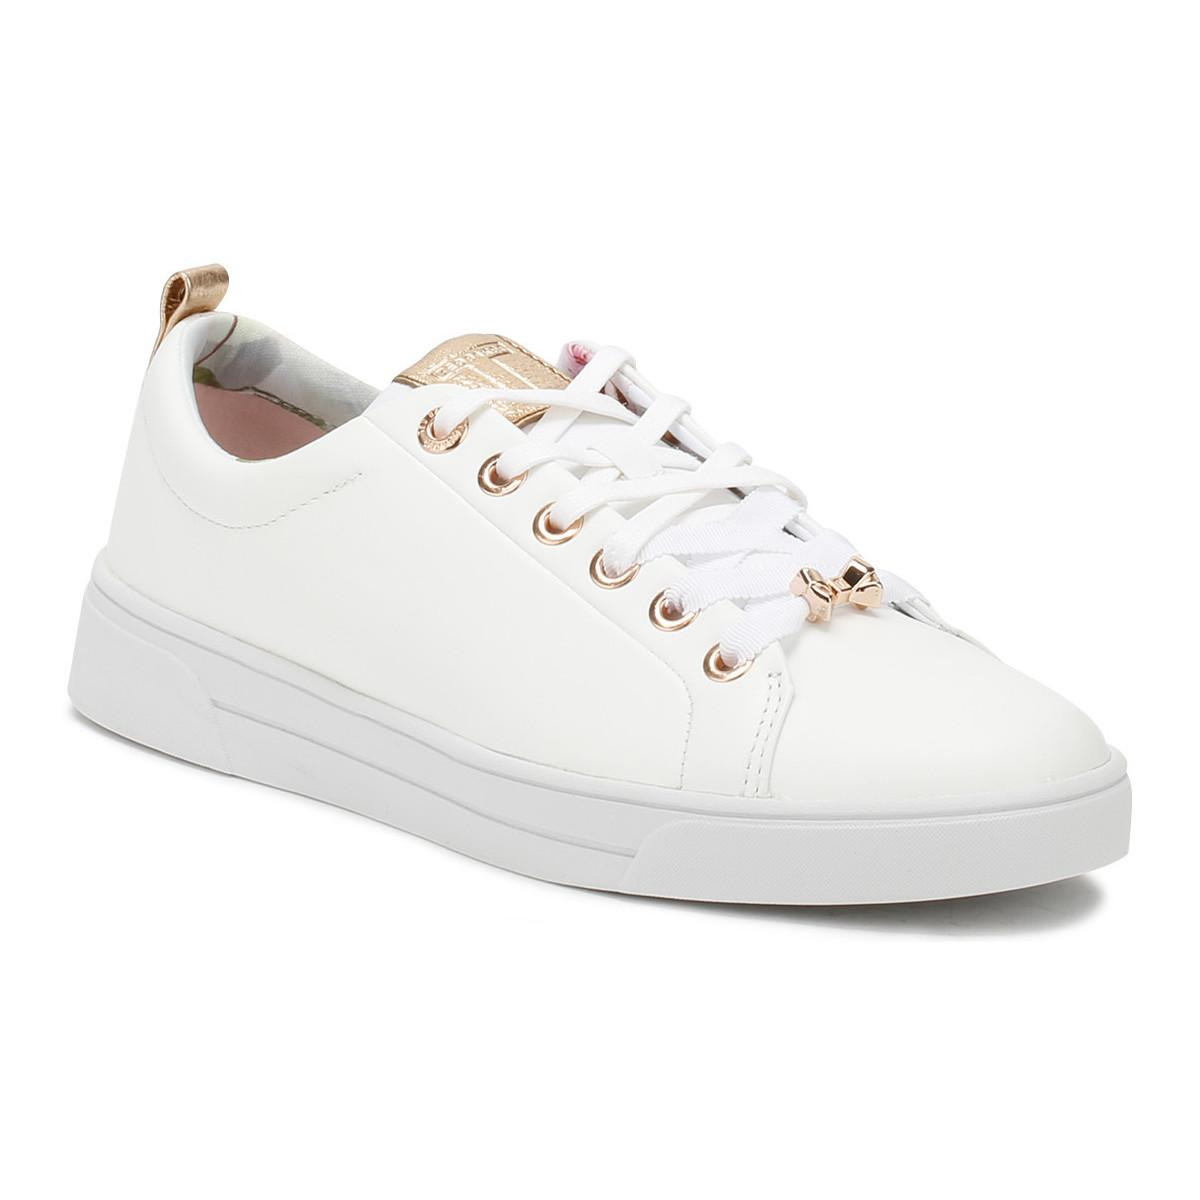 c13d6c9a5 Ted Baker Womens White Kellei Trainers Women s Shoes (trainers) In ...